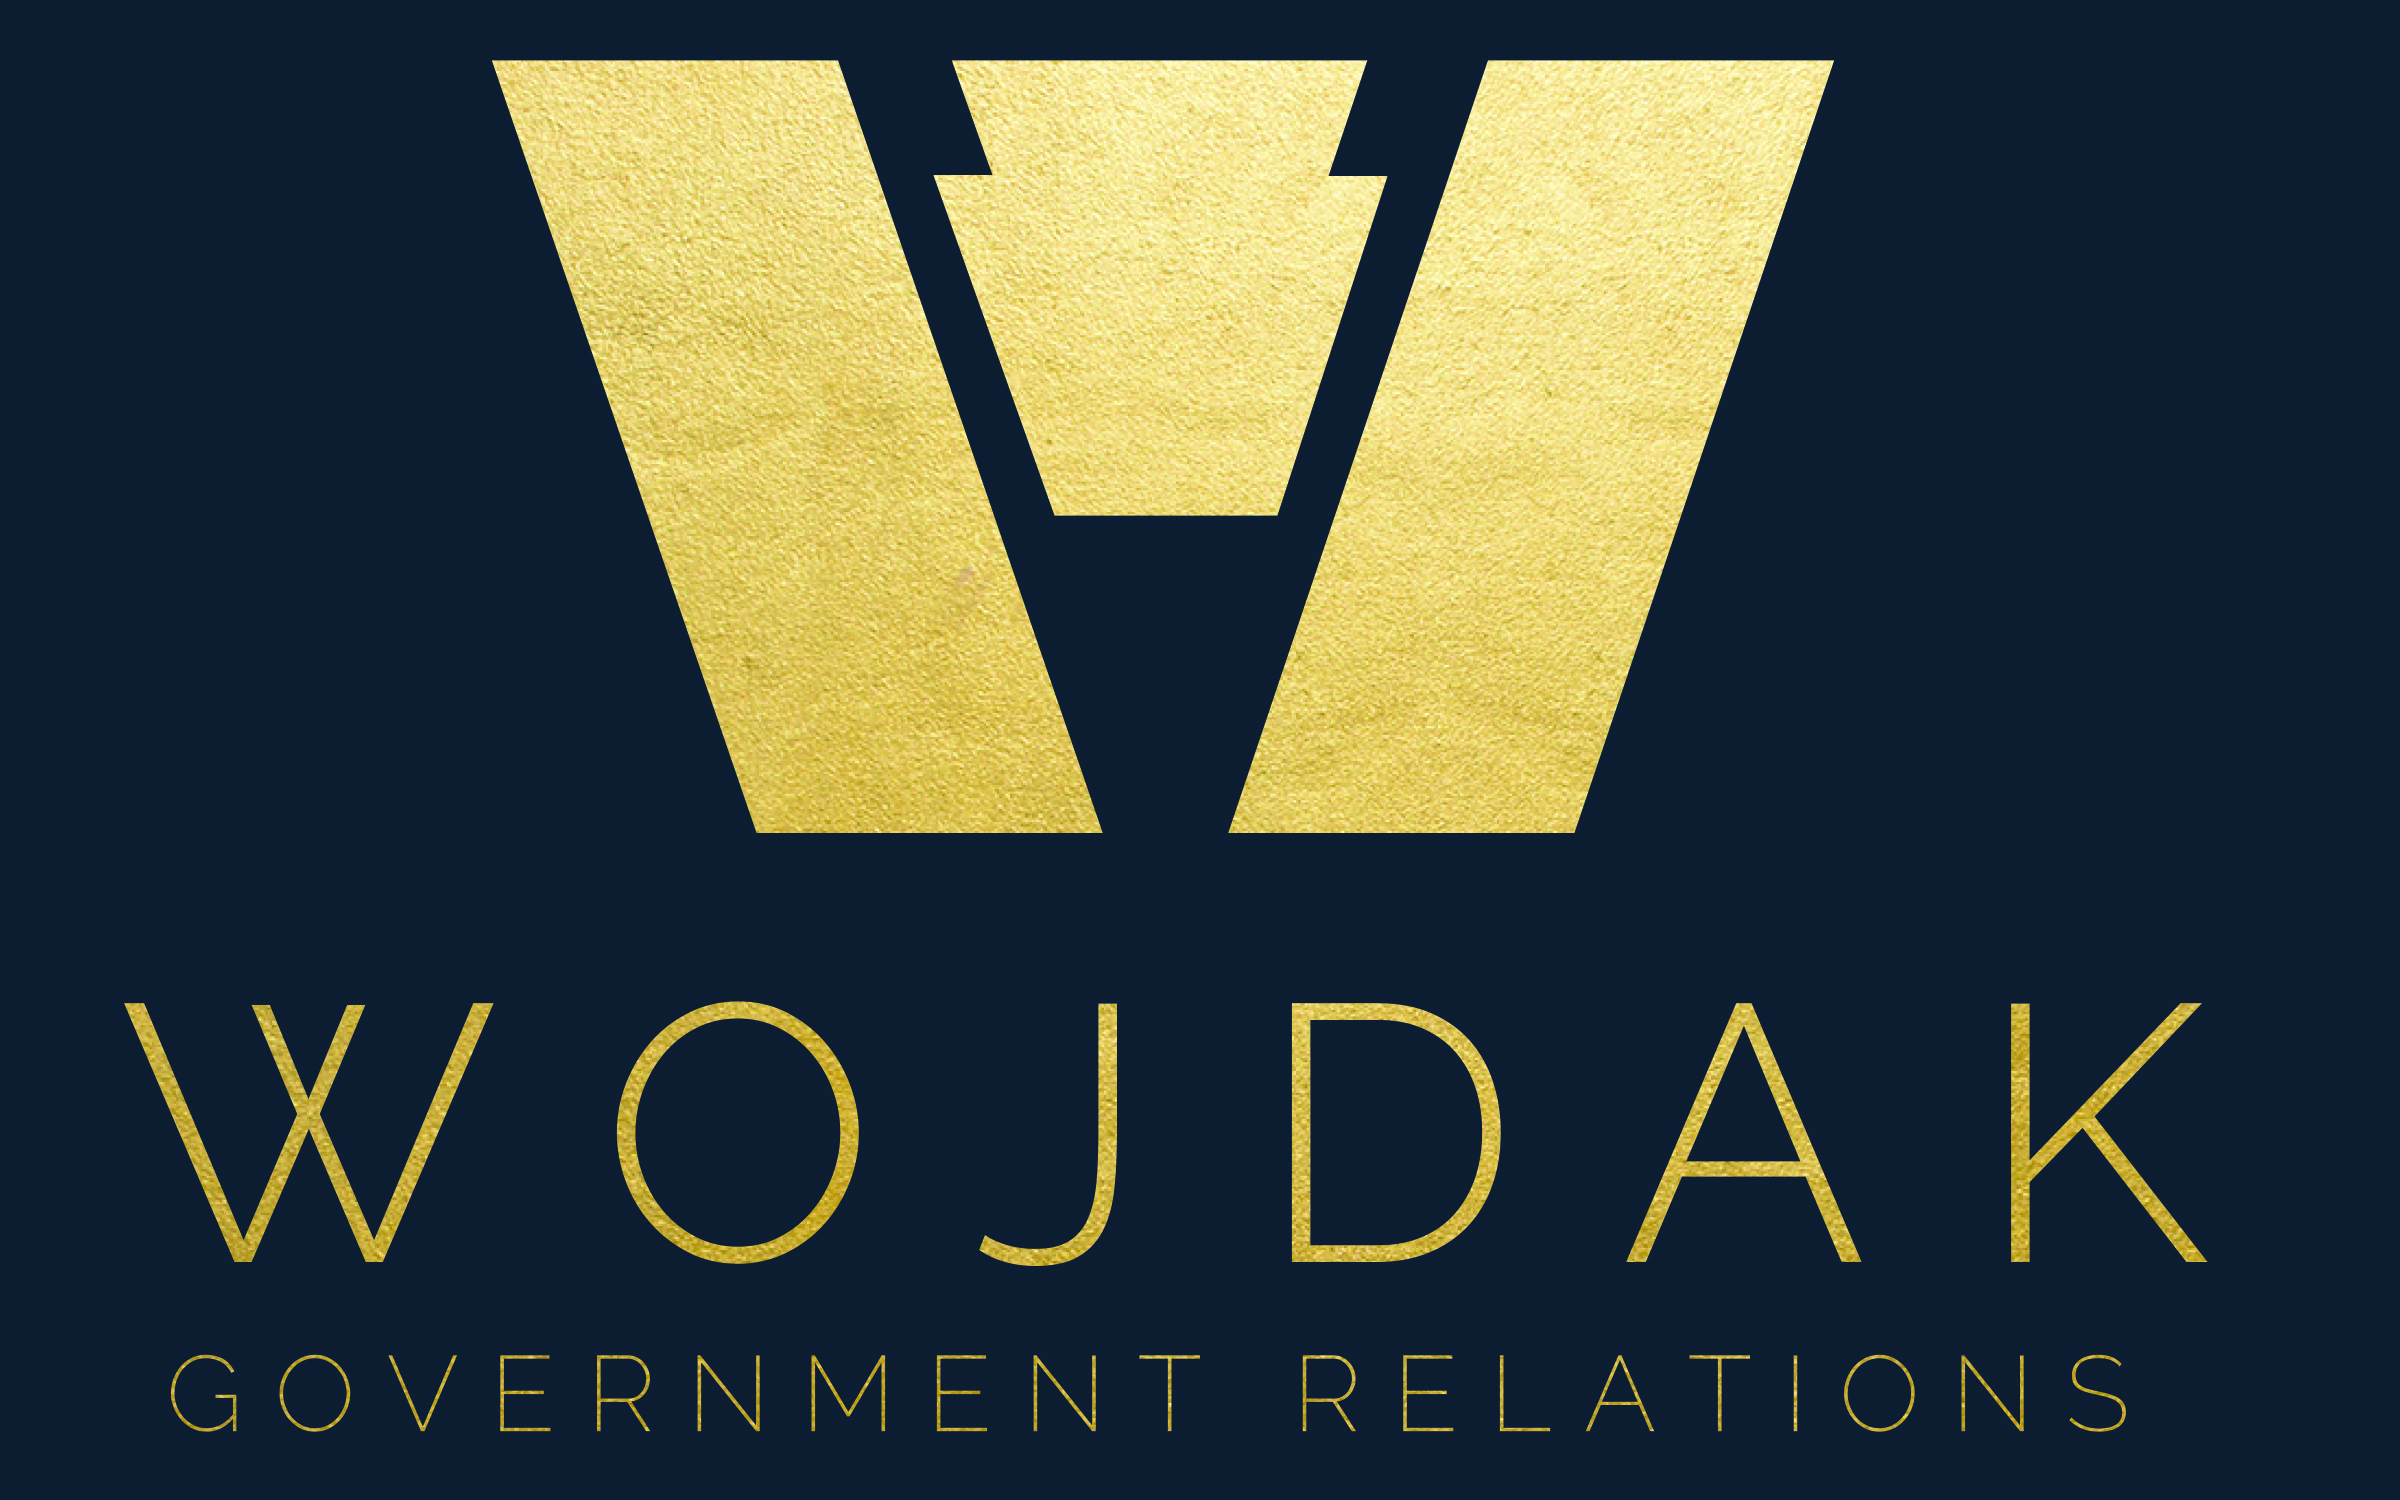 Wojdak Government Relations